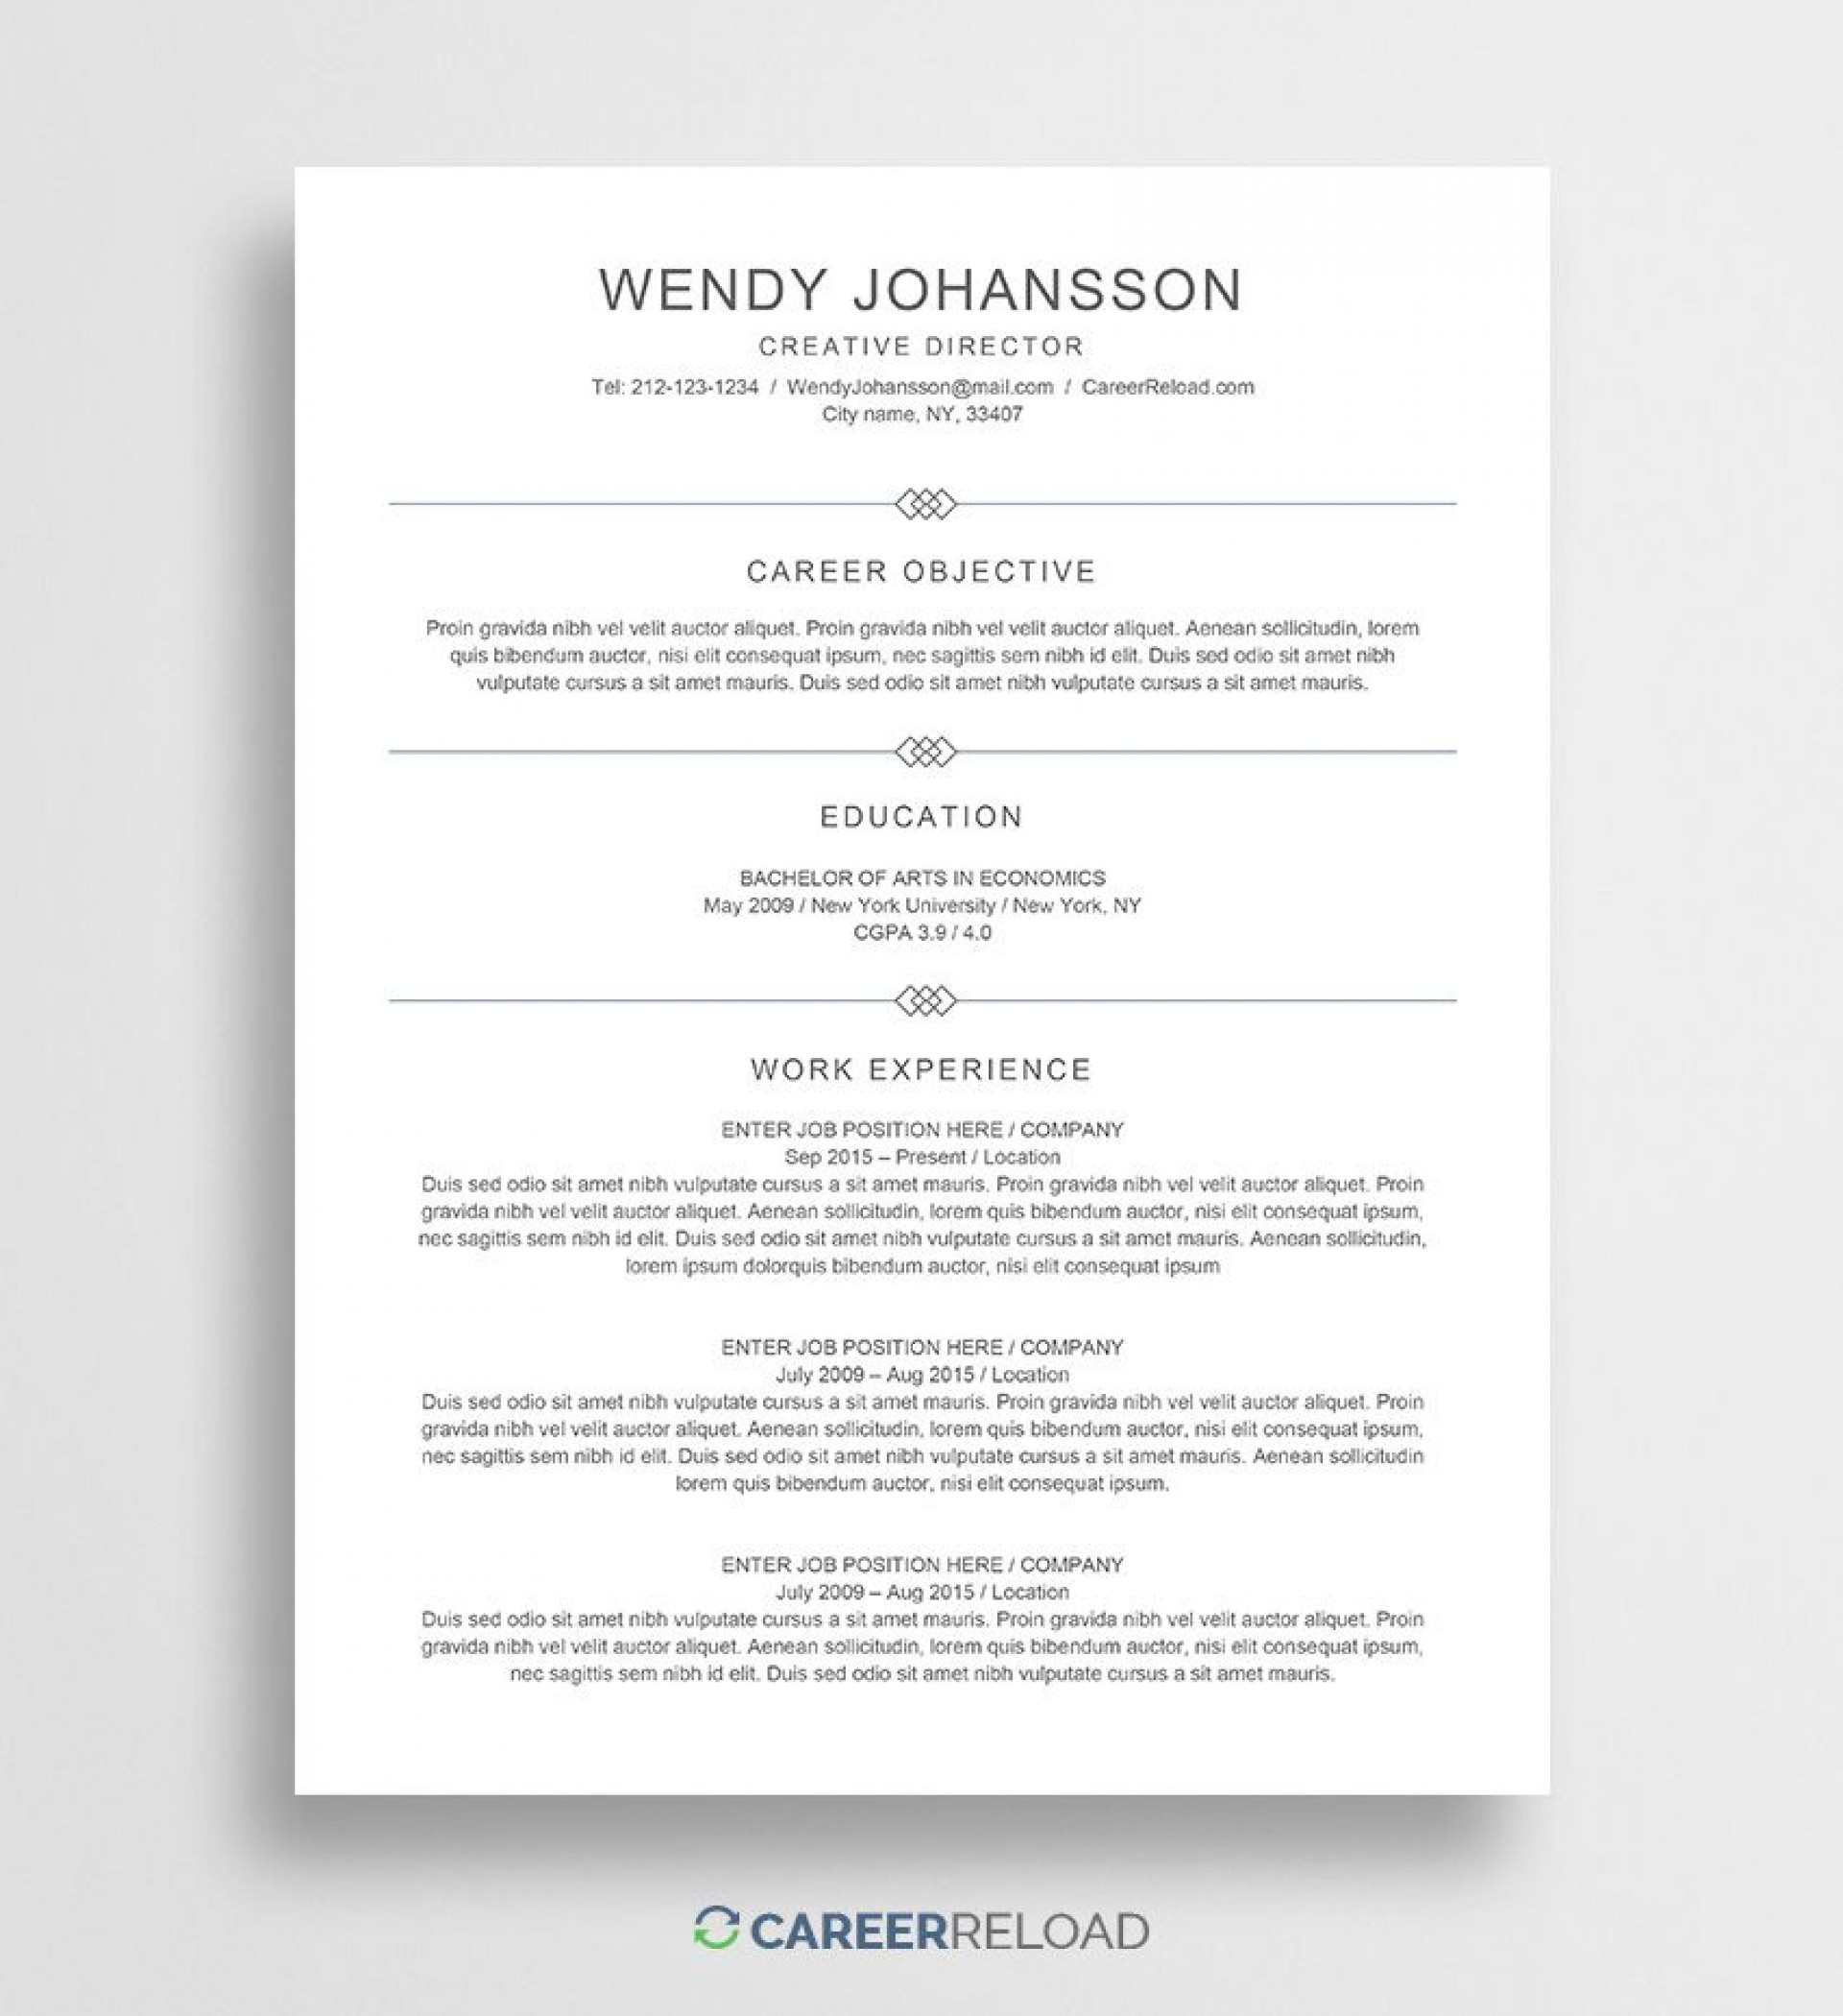 006 Impressive Entry Level Resume Template Word Download Photo 1920